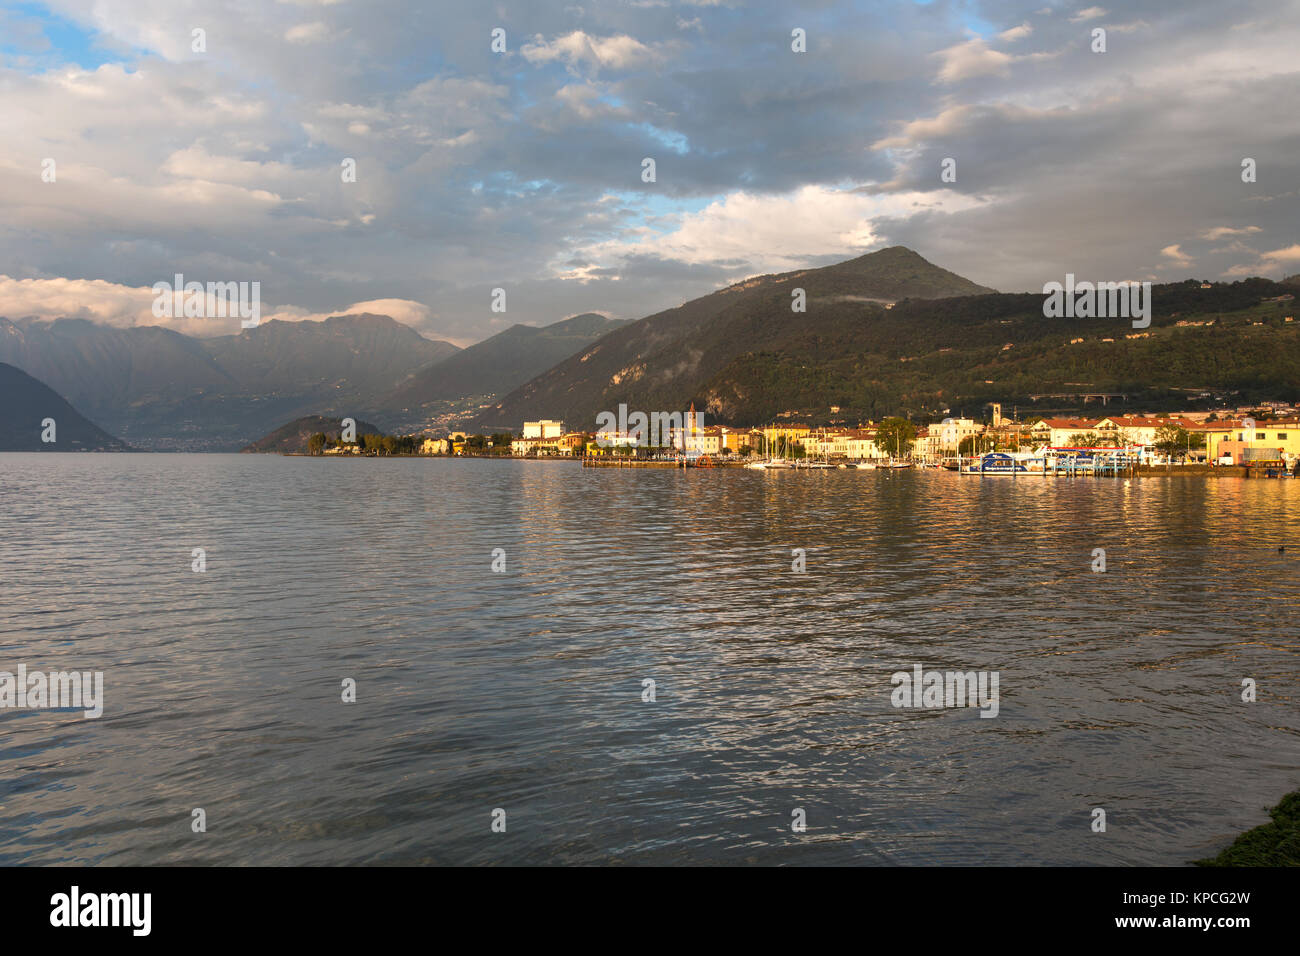 Lake Iseo, Italy. Picturesque dusk view of Lake Iseo, and the town of Iseo. The scene was captured looking eastwards - Stock Image